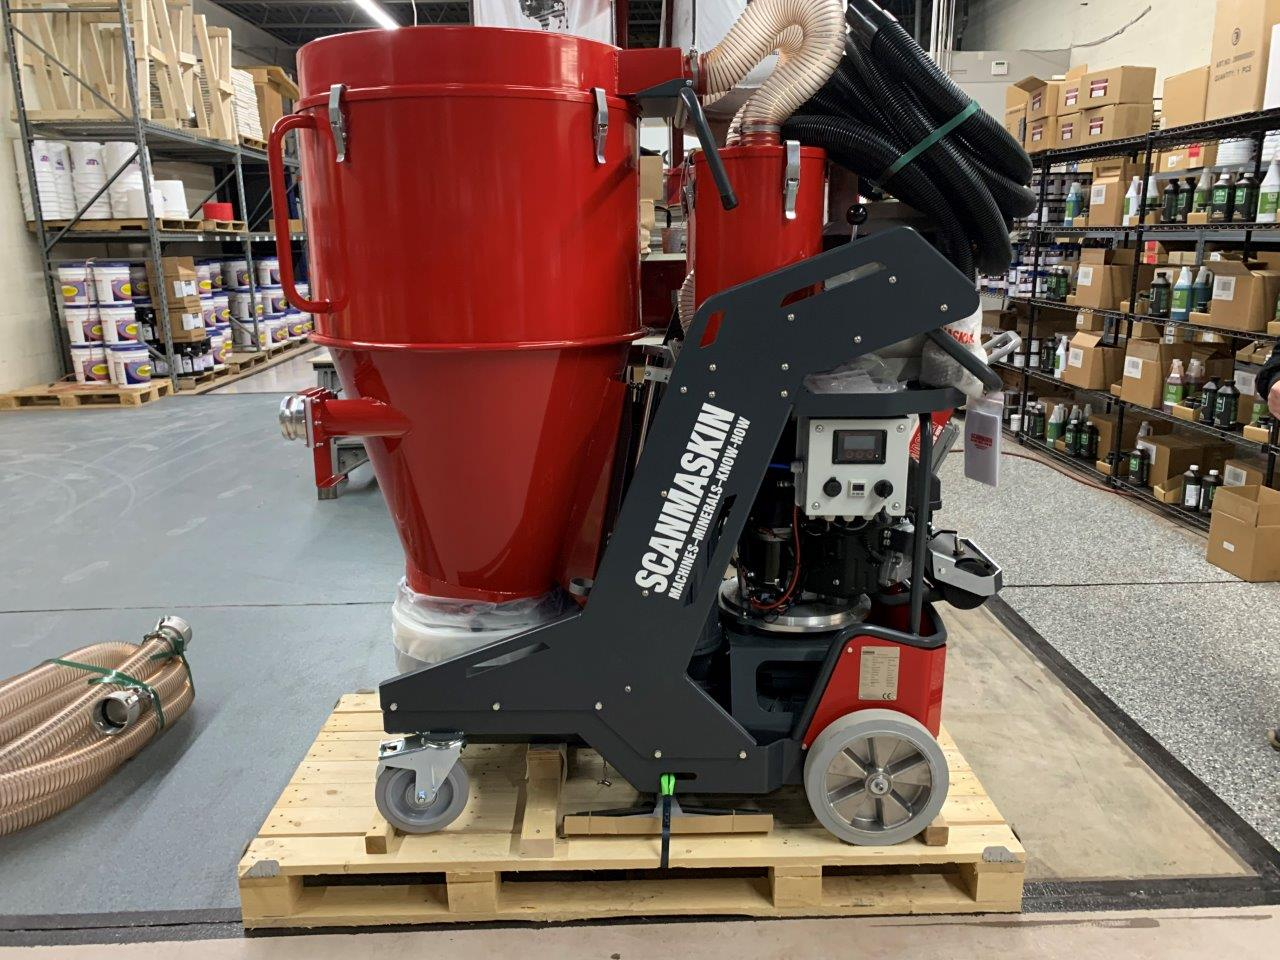 Propane Powered Industrial Dust Collector 9000 by Scanmaskin Large View